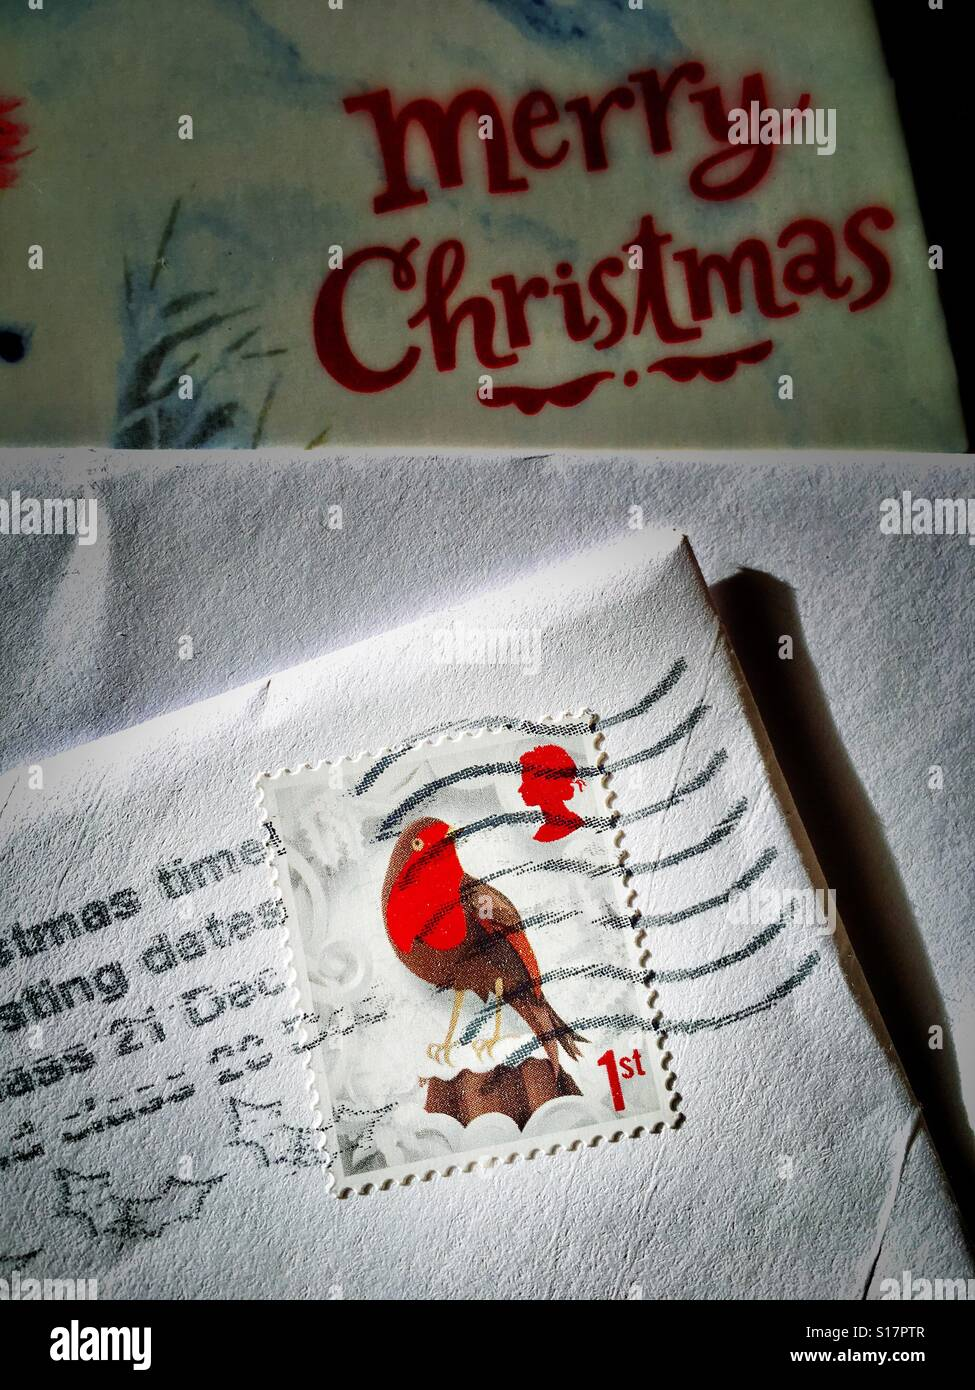 Royal Mail 1st class Christmas stamp and Xmas card UK - Stock Image